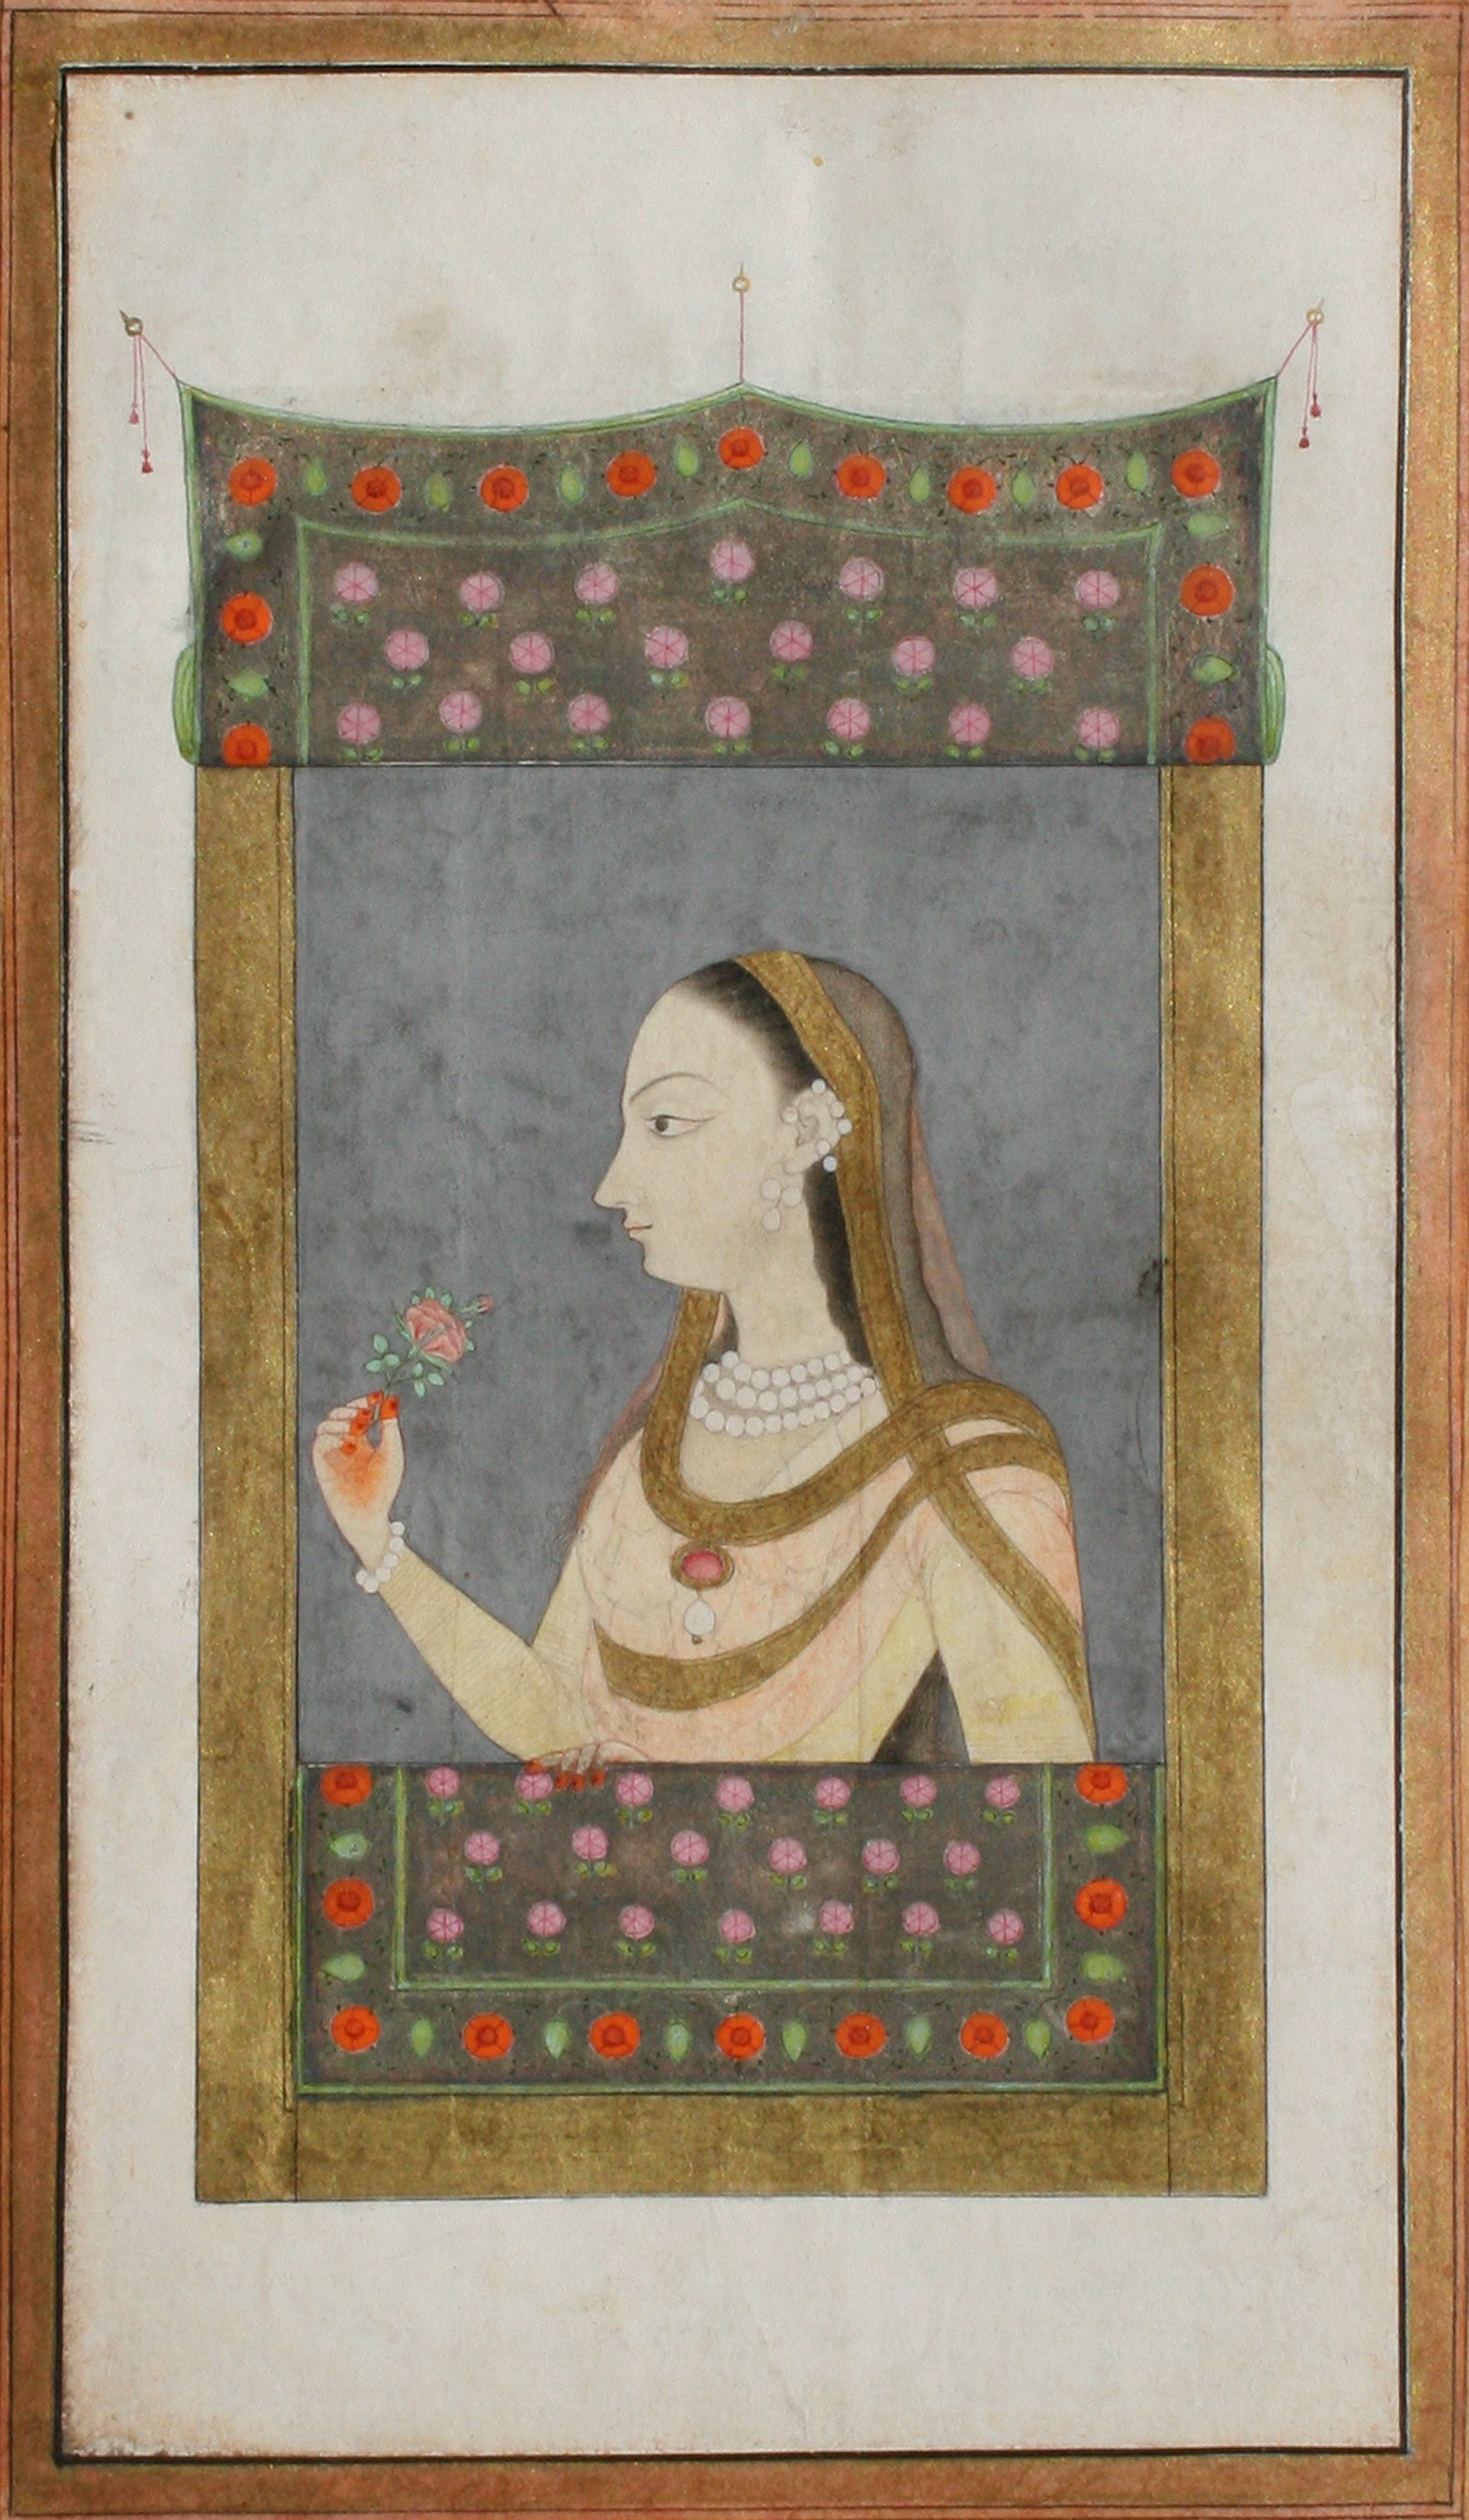 Princess Sitting at a Window - Awadh, Mughal Painting, c1730